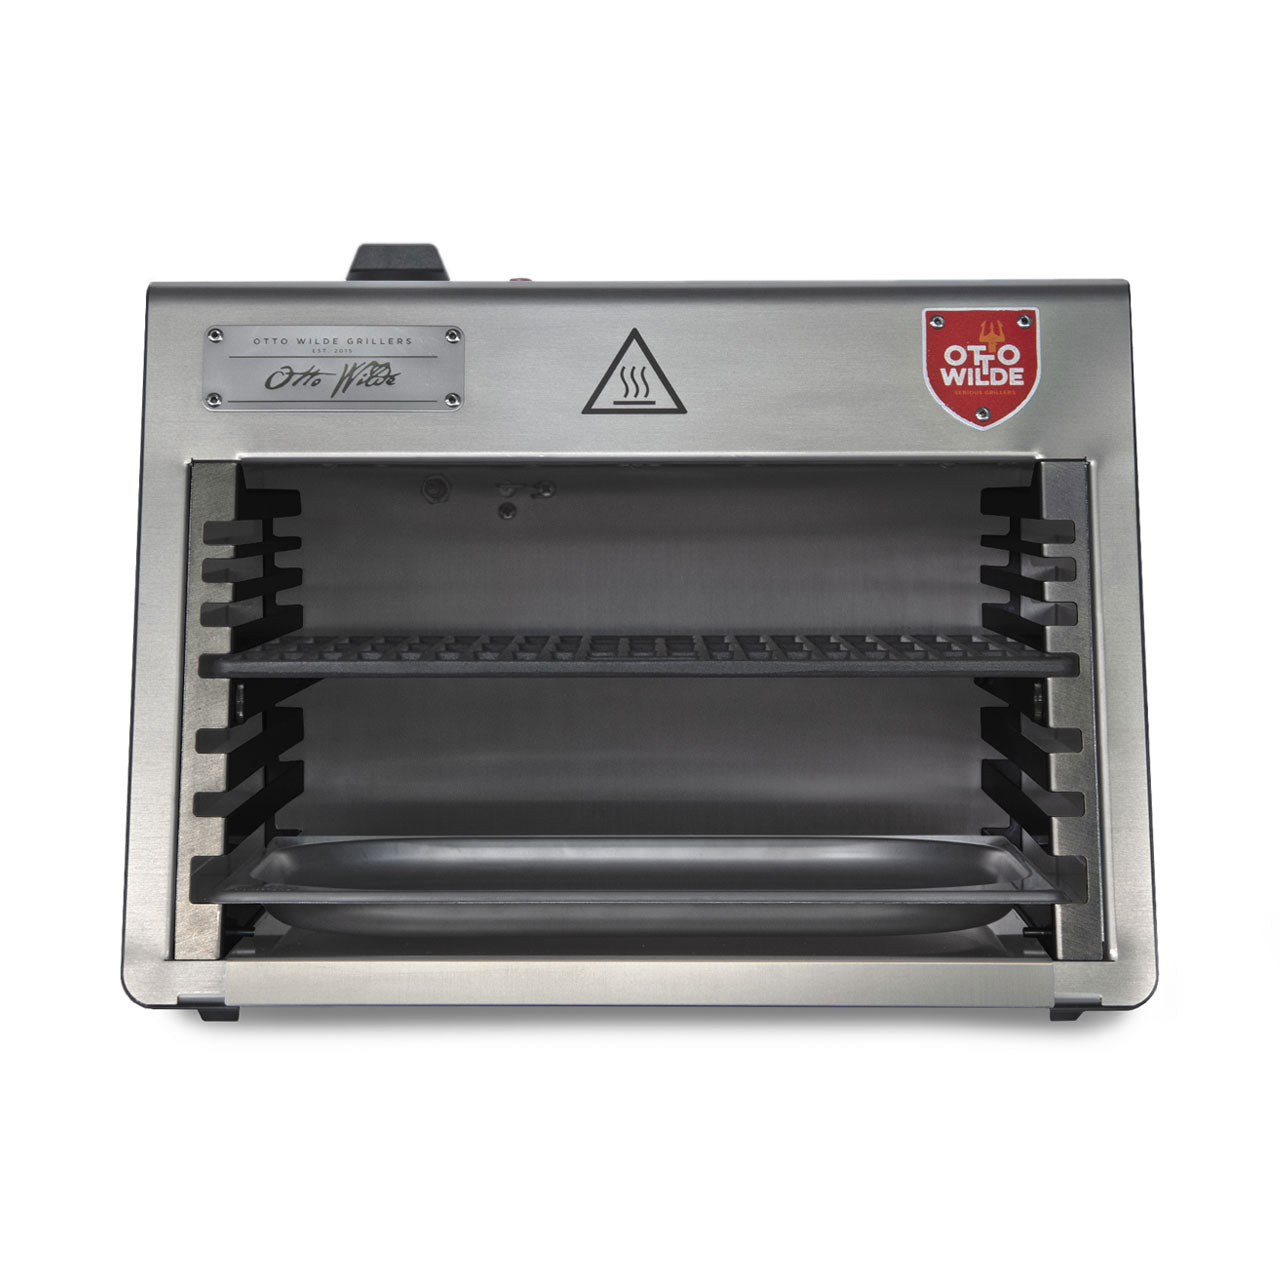 Otto Wilde Lite Steak Grill